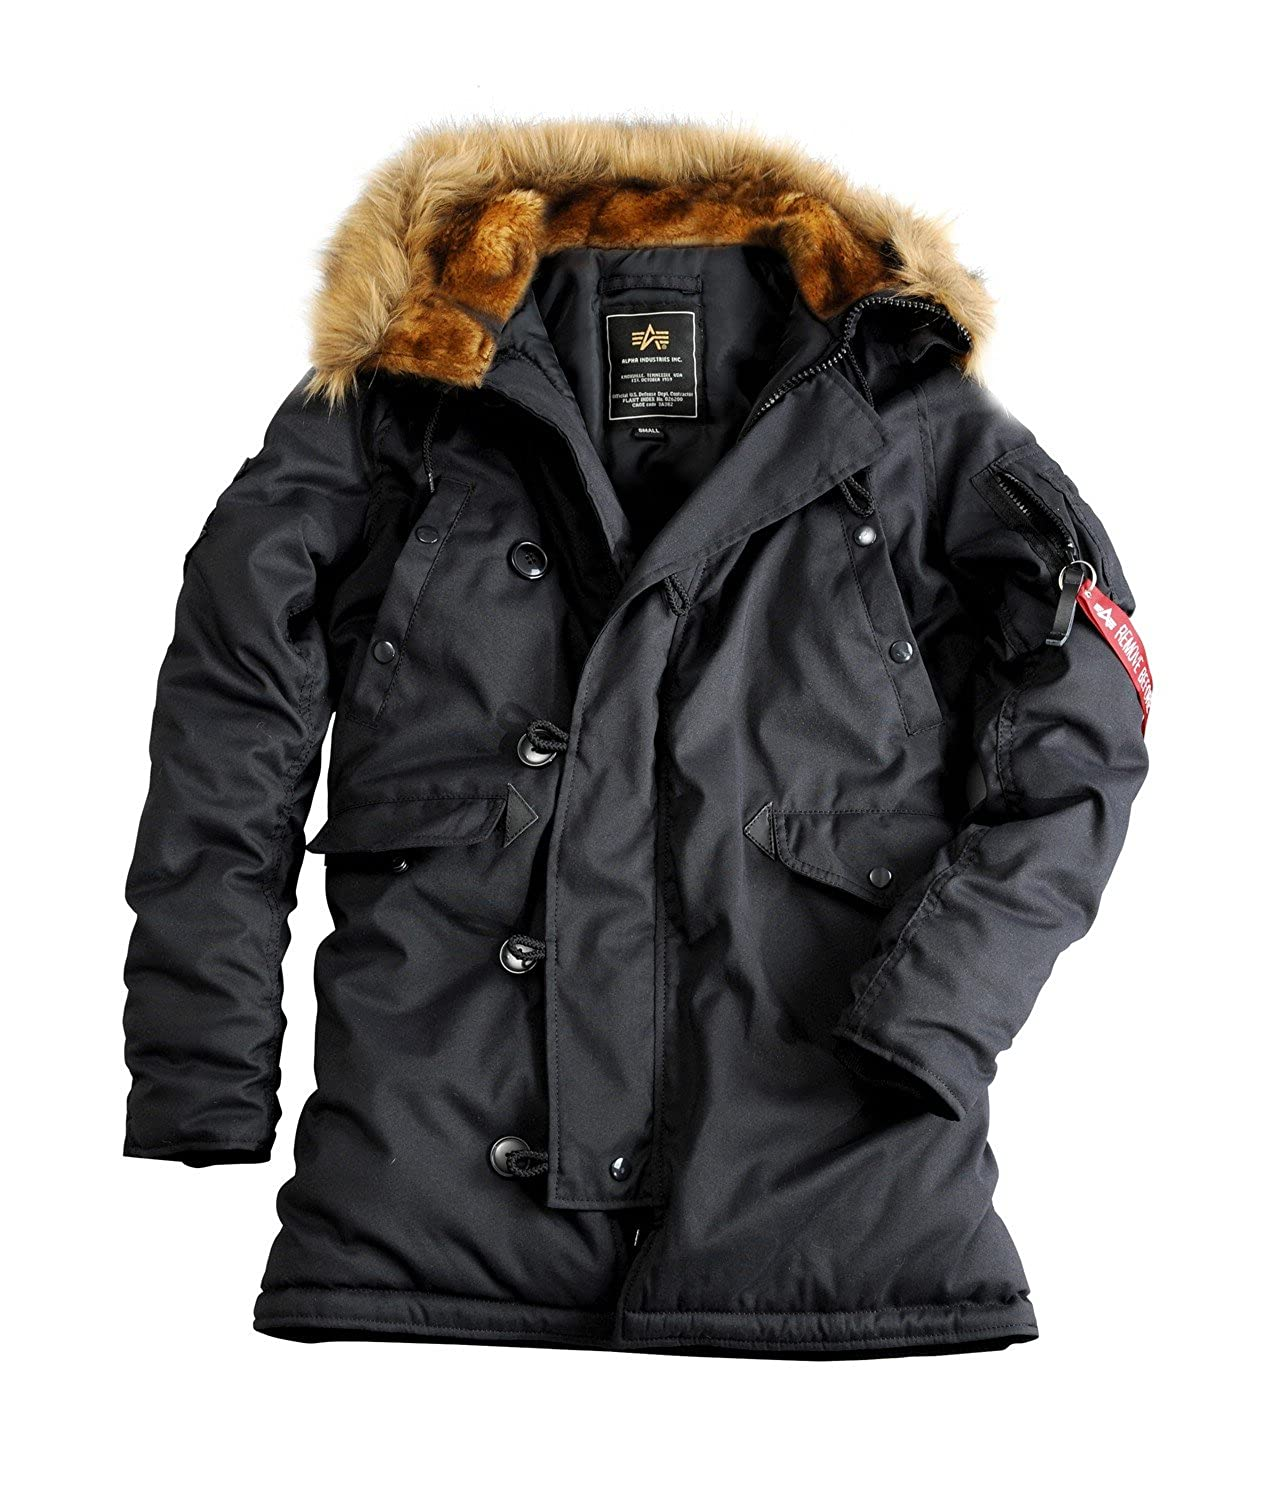 Alpha Industries Explorer Women Jacke Parka Wintermantel 60343 günstig kaufen